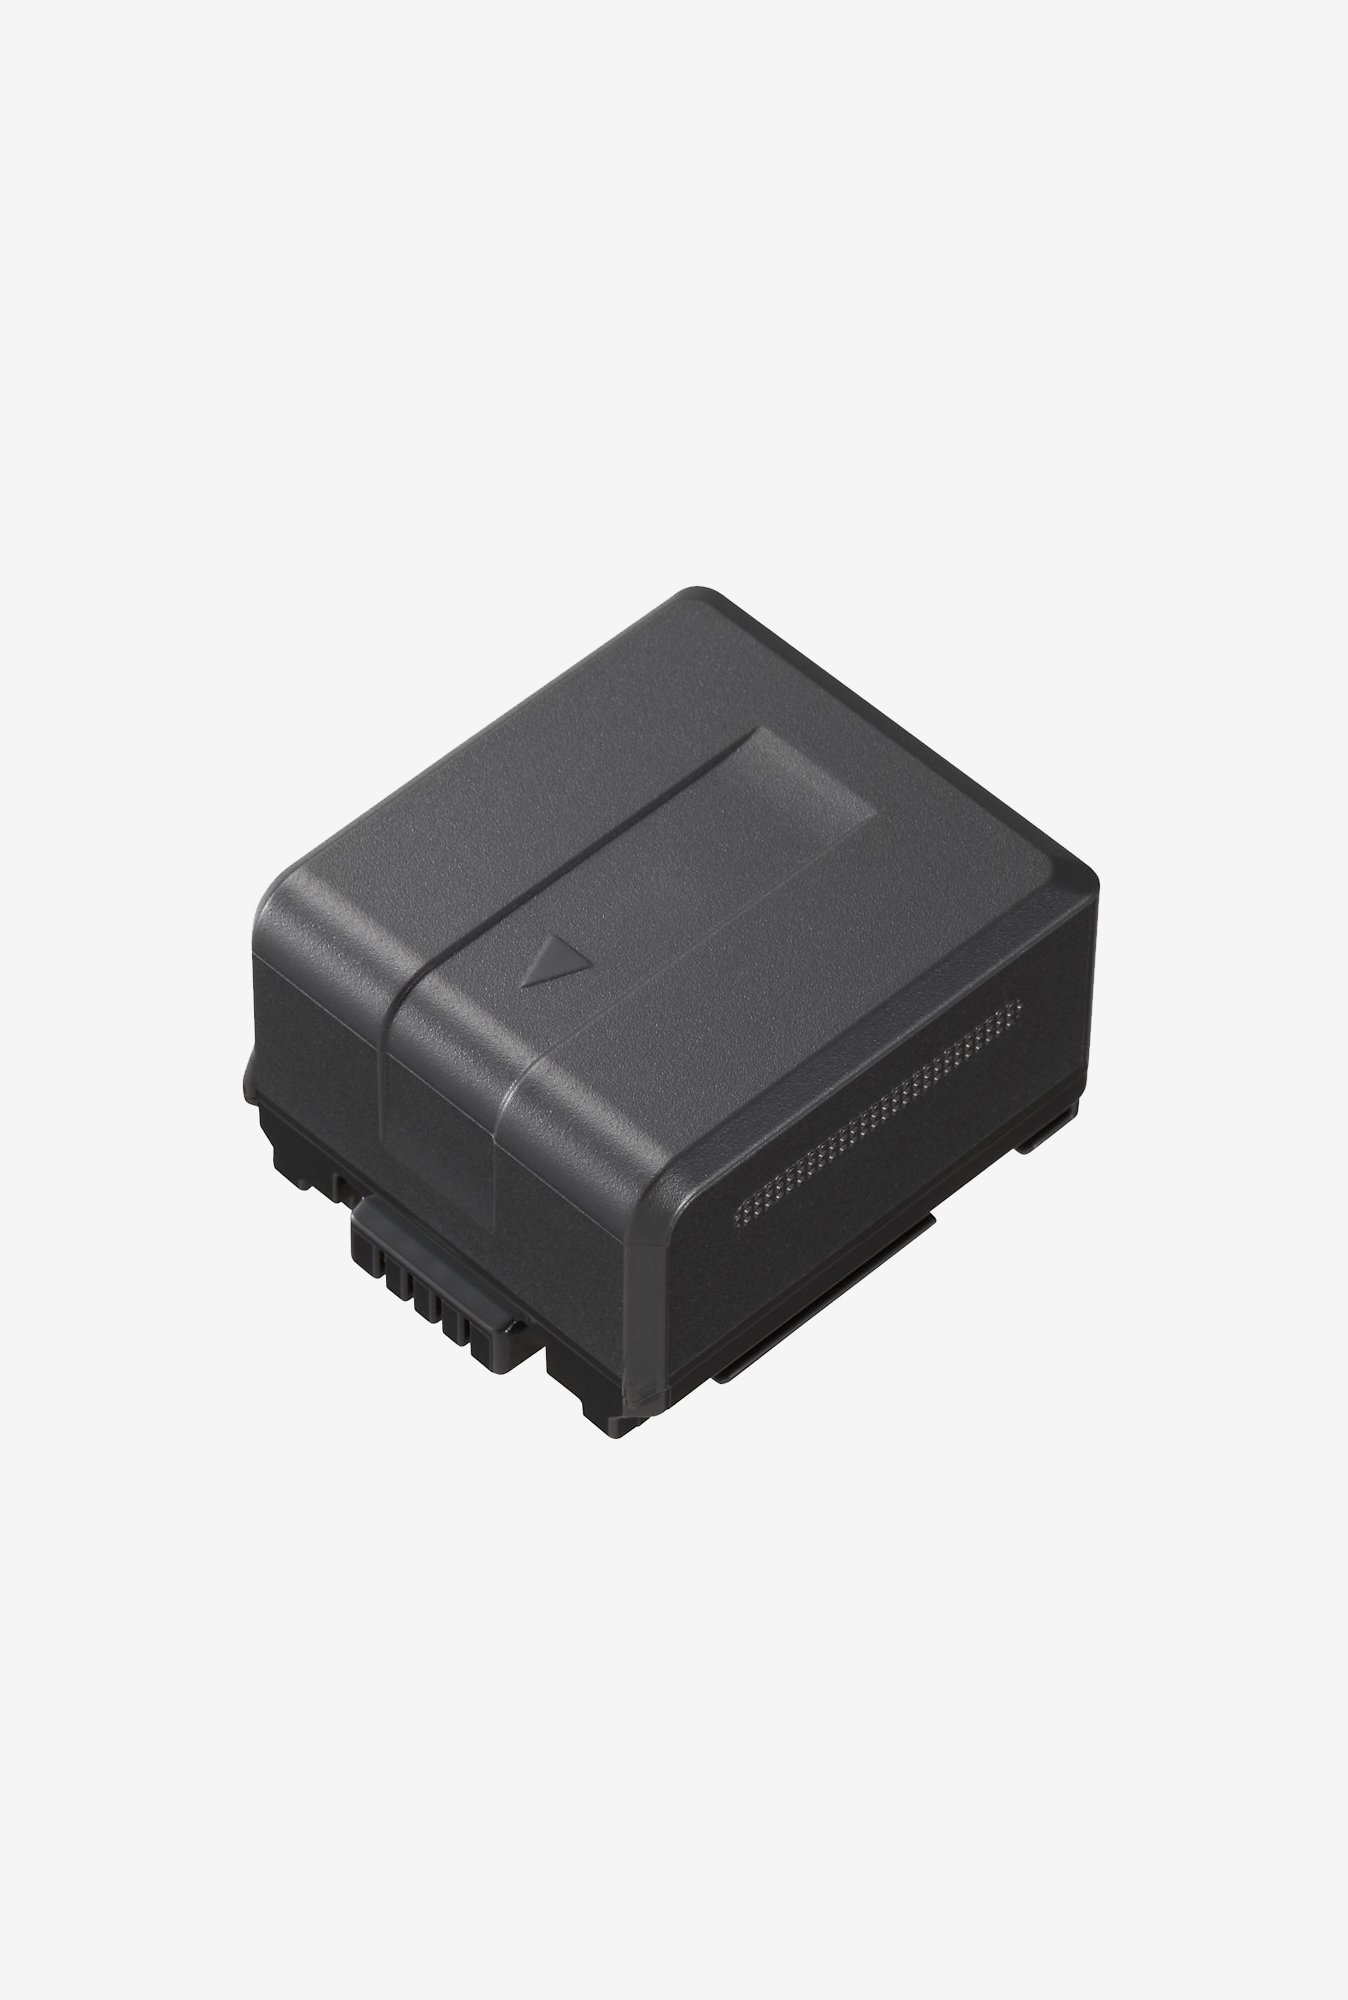 Panasonic VW-VBG130 Battery Black